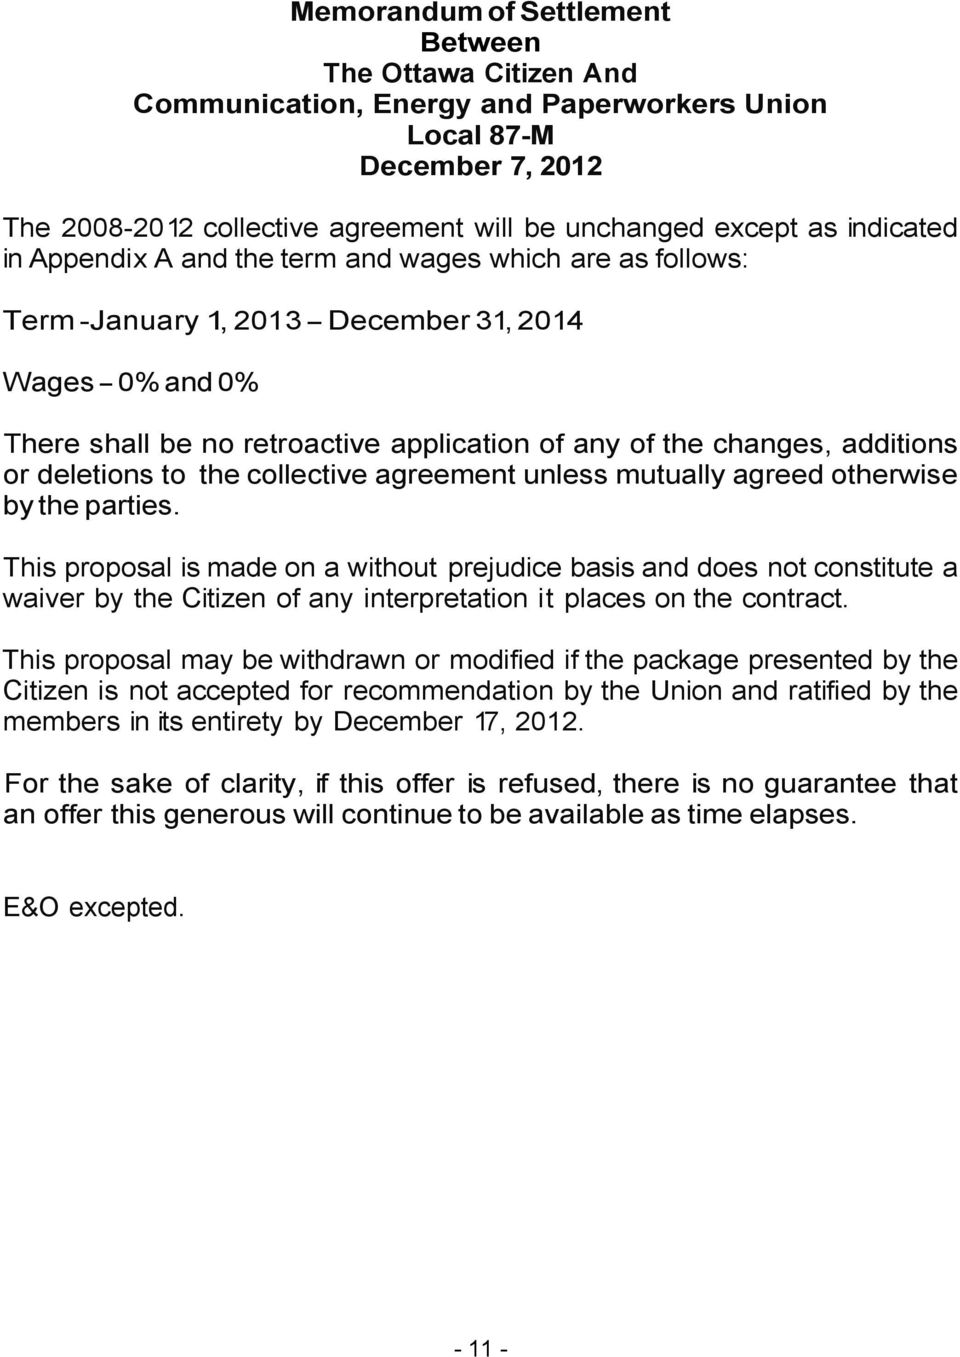 COLLECTIVE AGREEMENT - PDF